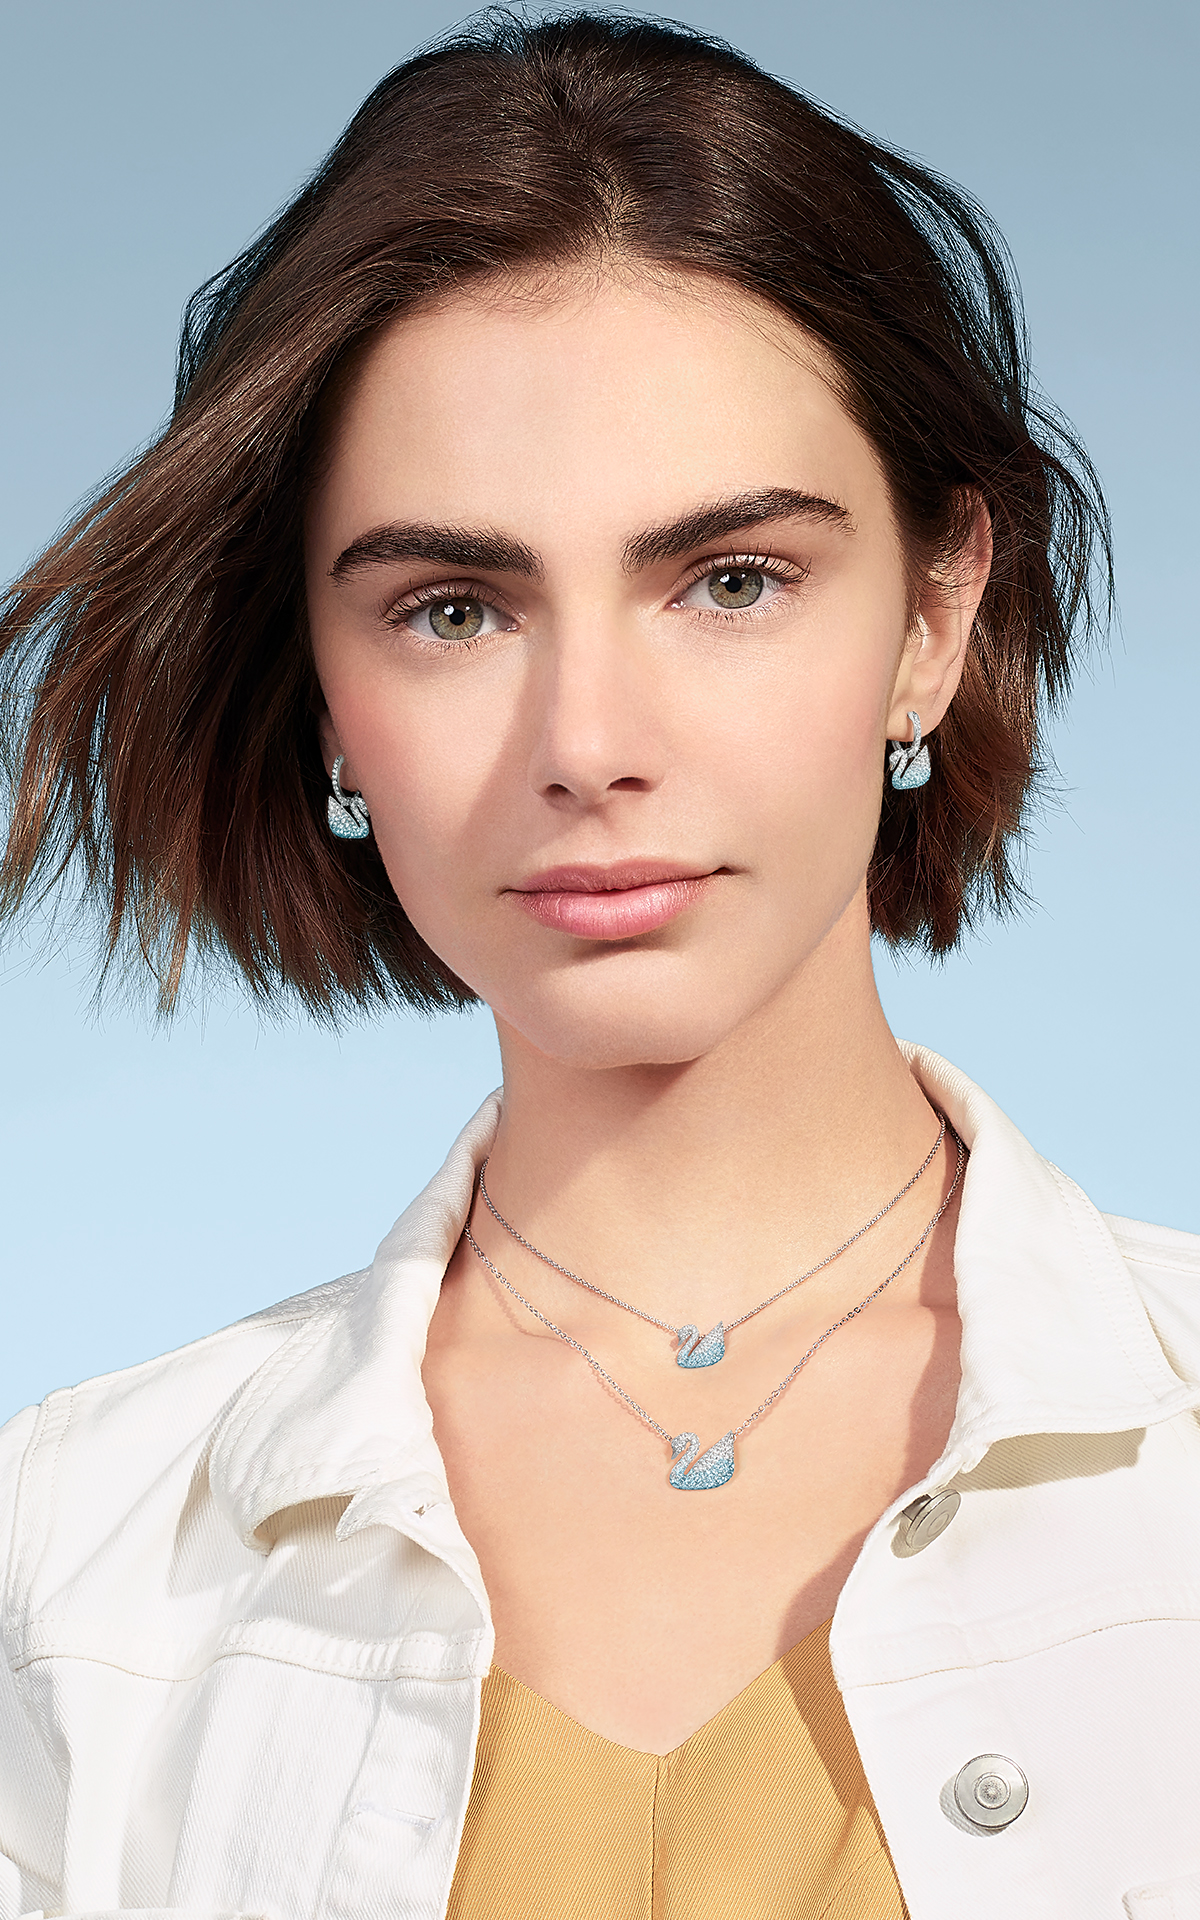 Short haired girl wearing Swarovski jewelry